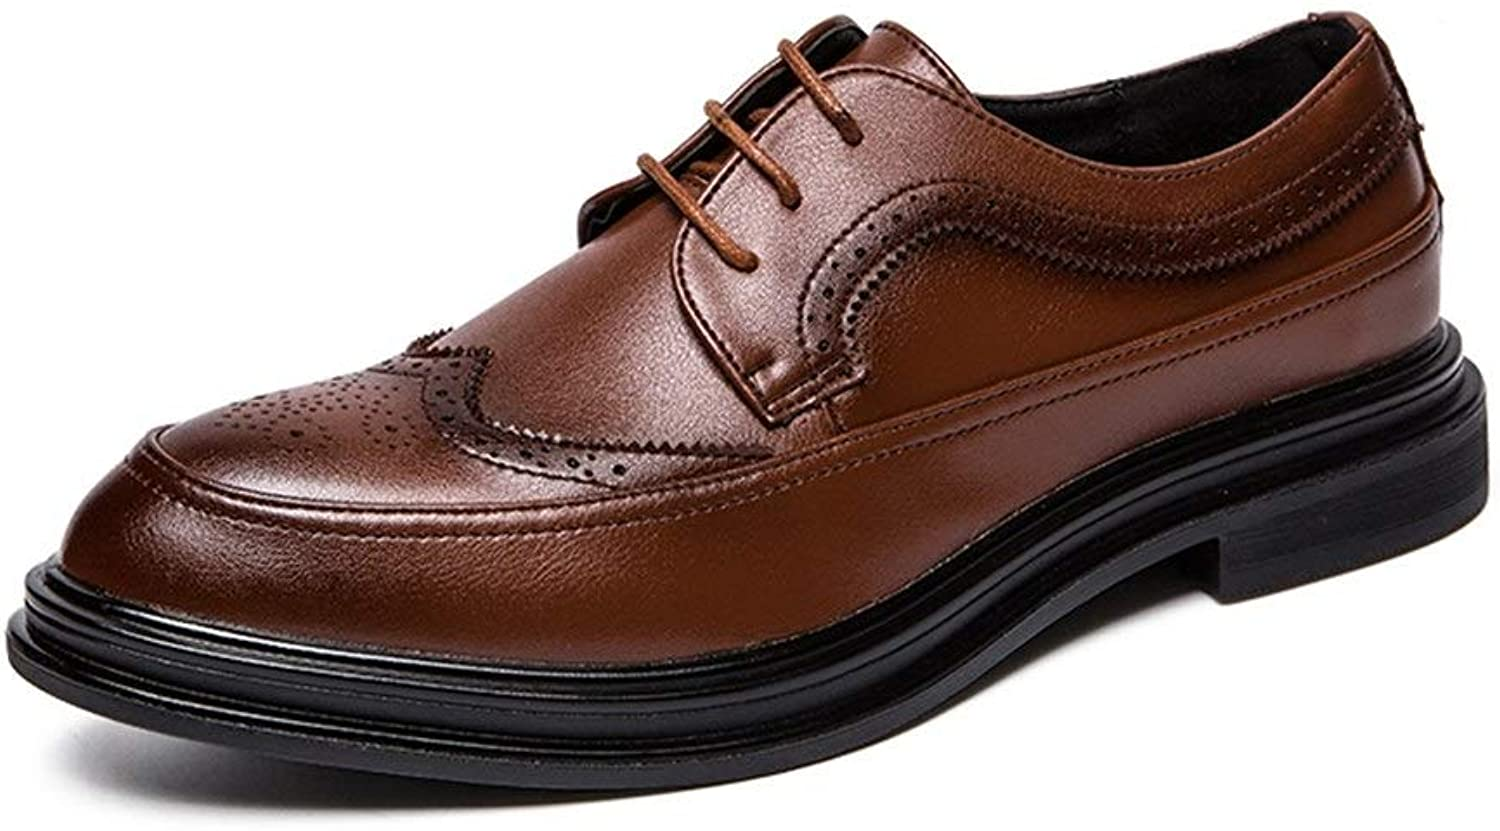 Fashion Men Wingtip Oxfords Casual Lace-up Dress shoes Microfiber Upper Round Toe Lightweight Breathable Walking shoes Brogue shoes Men's Boots (color   Brown, Size   8 UK)